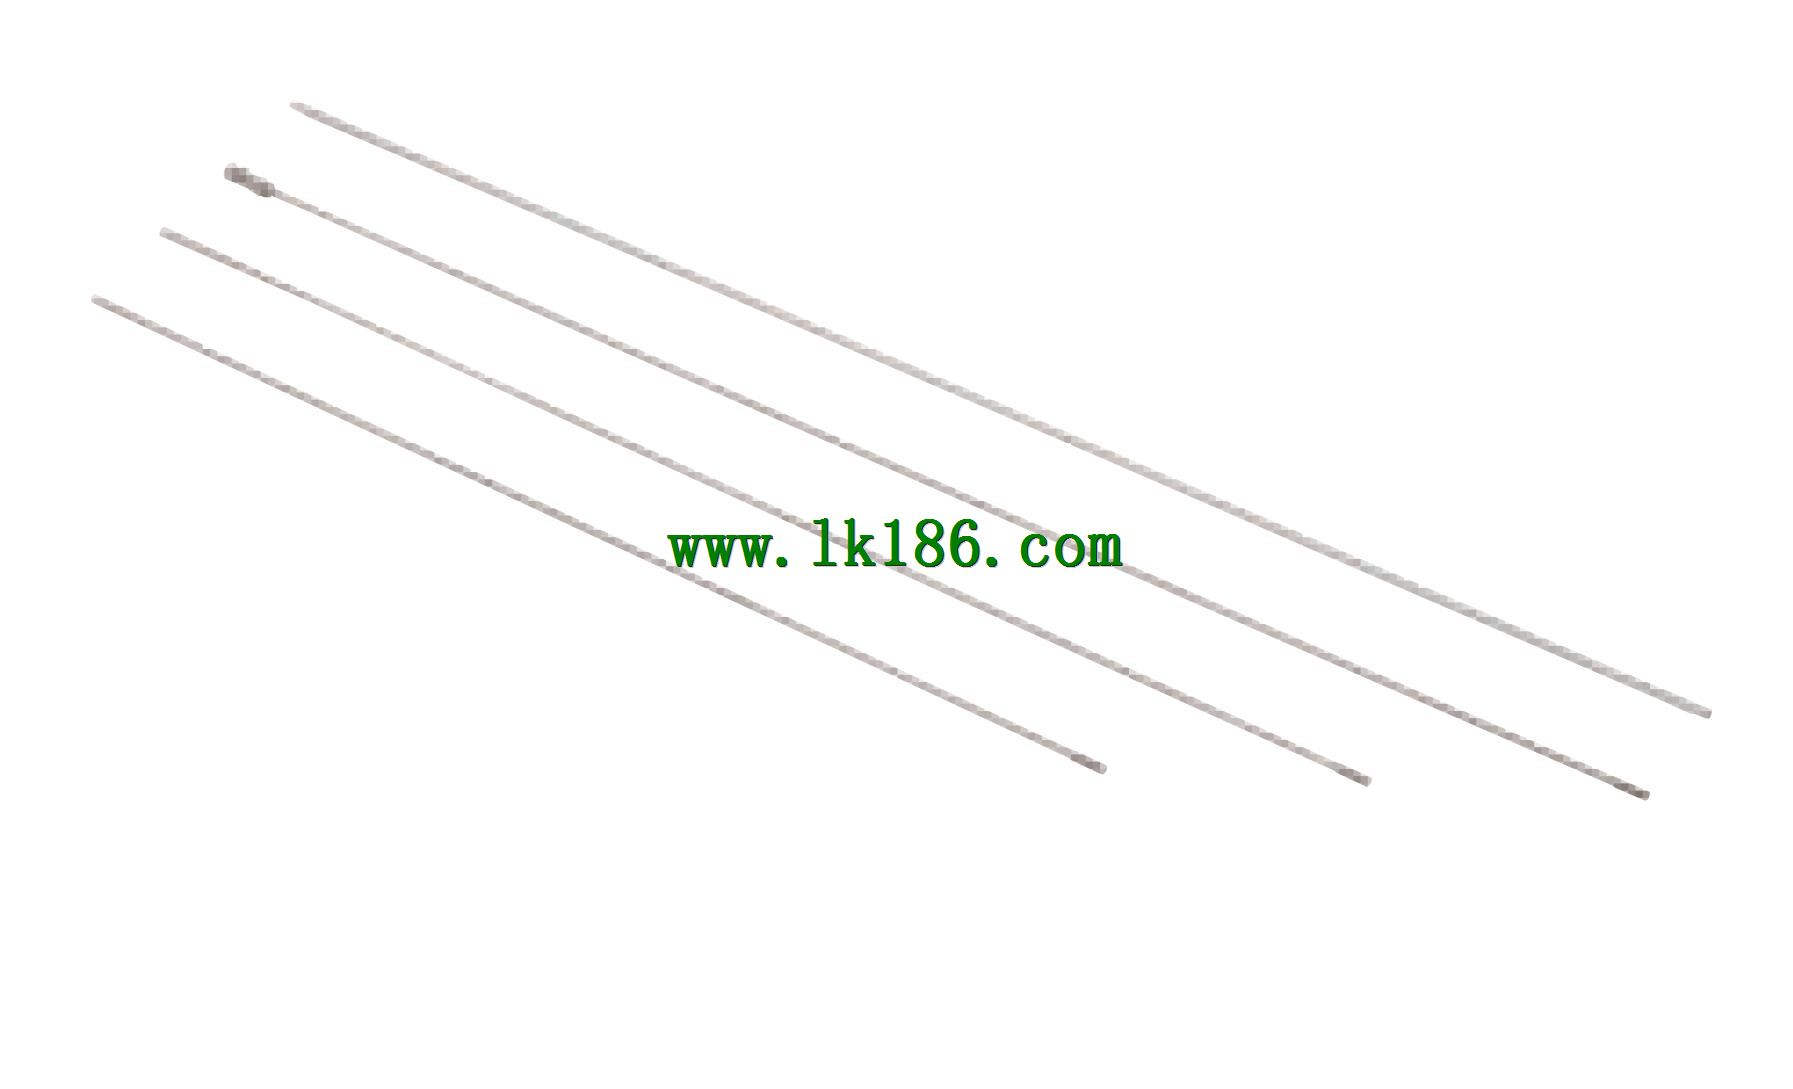 f03 series reliability omron f03 series electrodes and